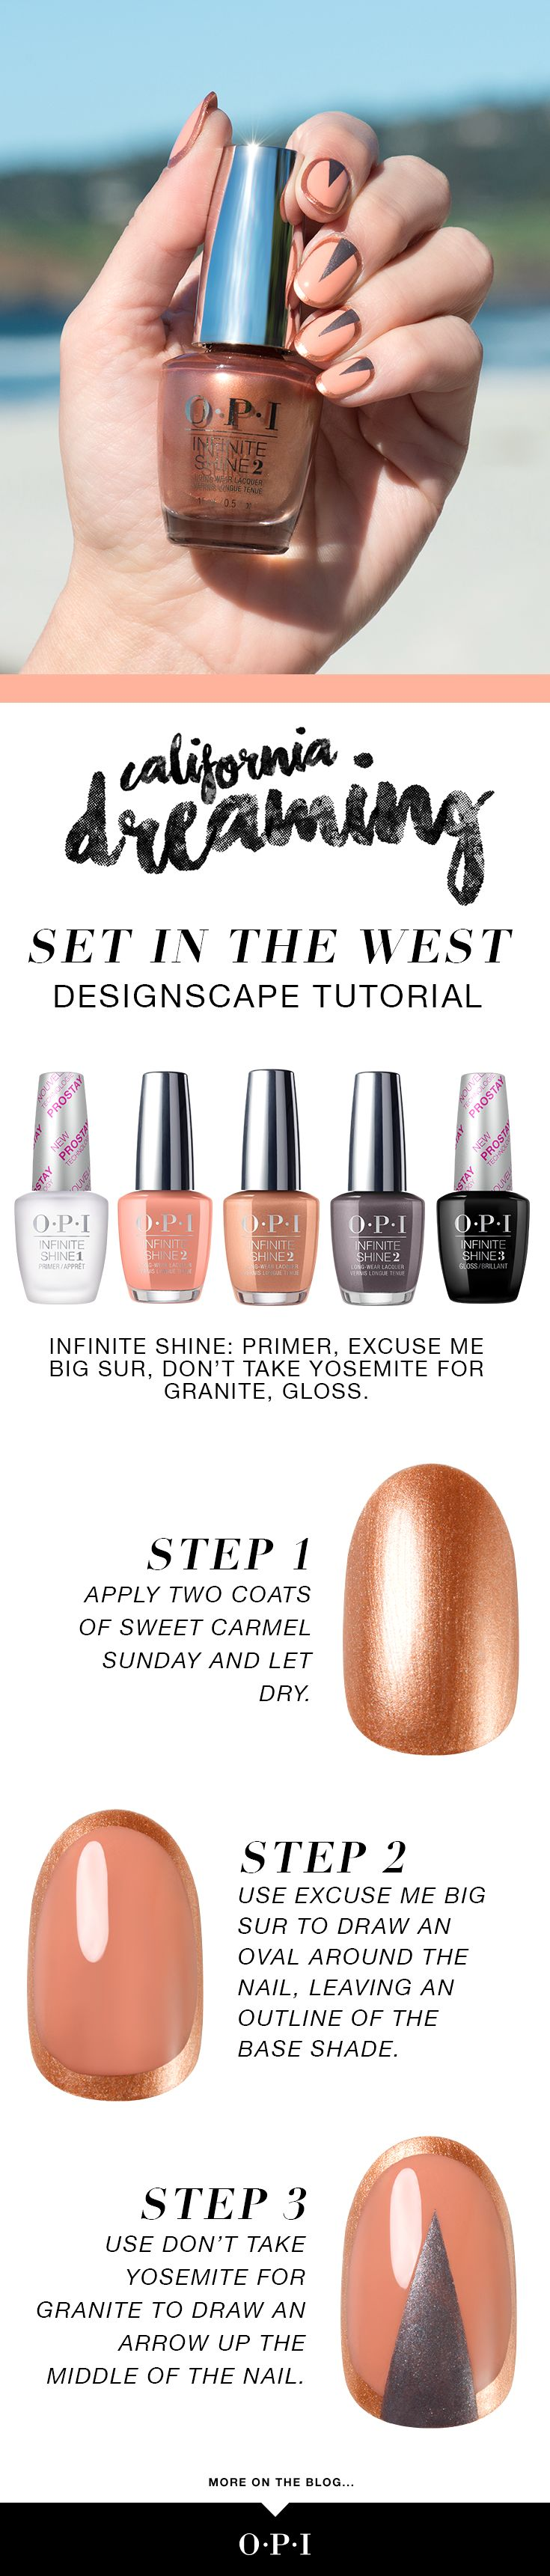 """OPI's California Dreaming collection is now available in Infinite Shine. Let us inspire your summer nails with """"Set in the West,"""" a fun summer nail art using colors from the new California Dreaming collection by OP1. Drive down the coast with this bright #OPICaliforniaDreaming look."""